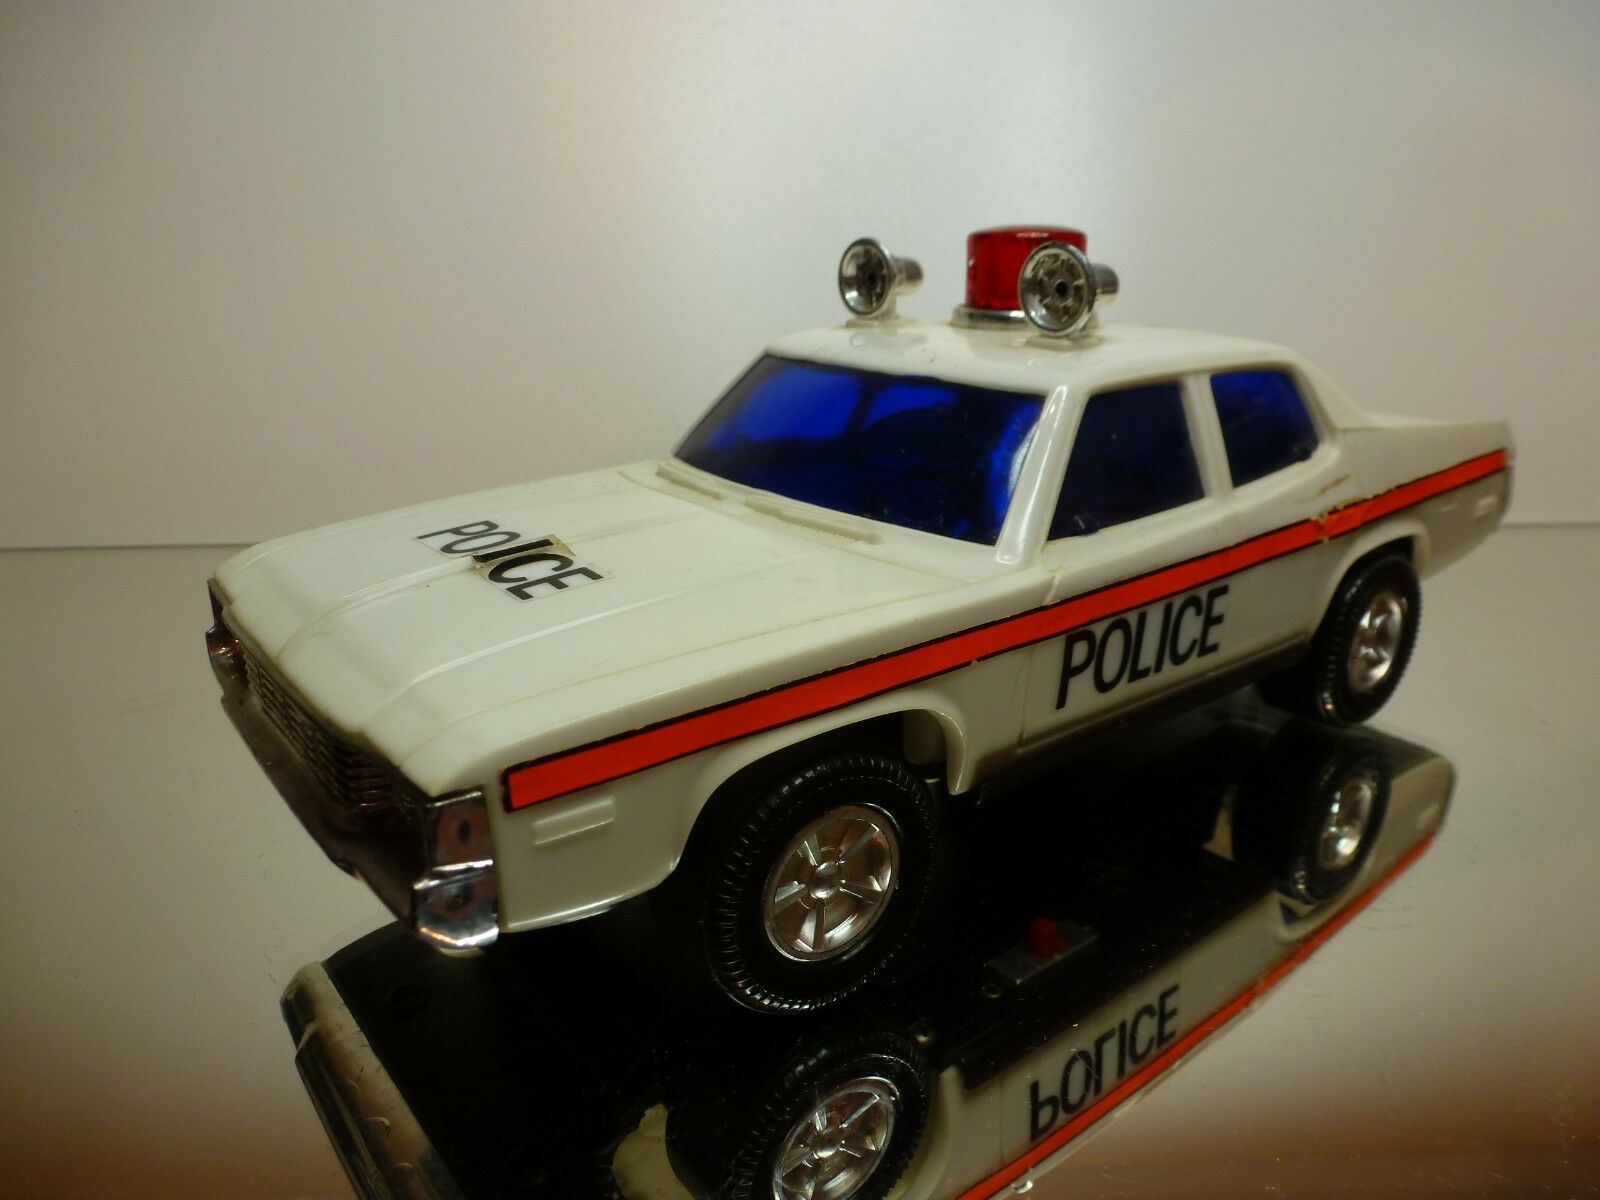 LUCKY HONG KONG AMERICAN POLICE CAR - bianca L25.0cm - GOOD CONDITION - BATTERY